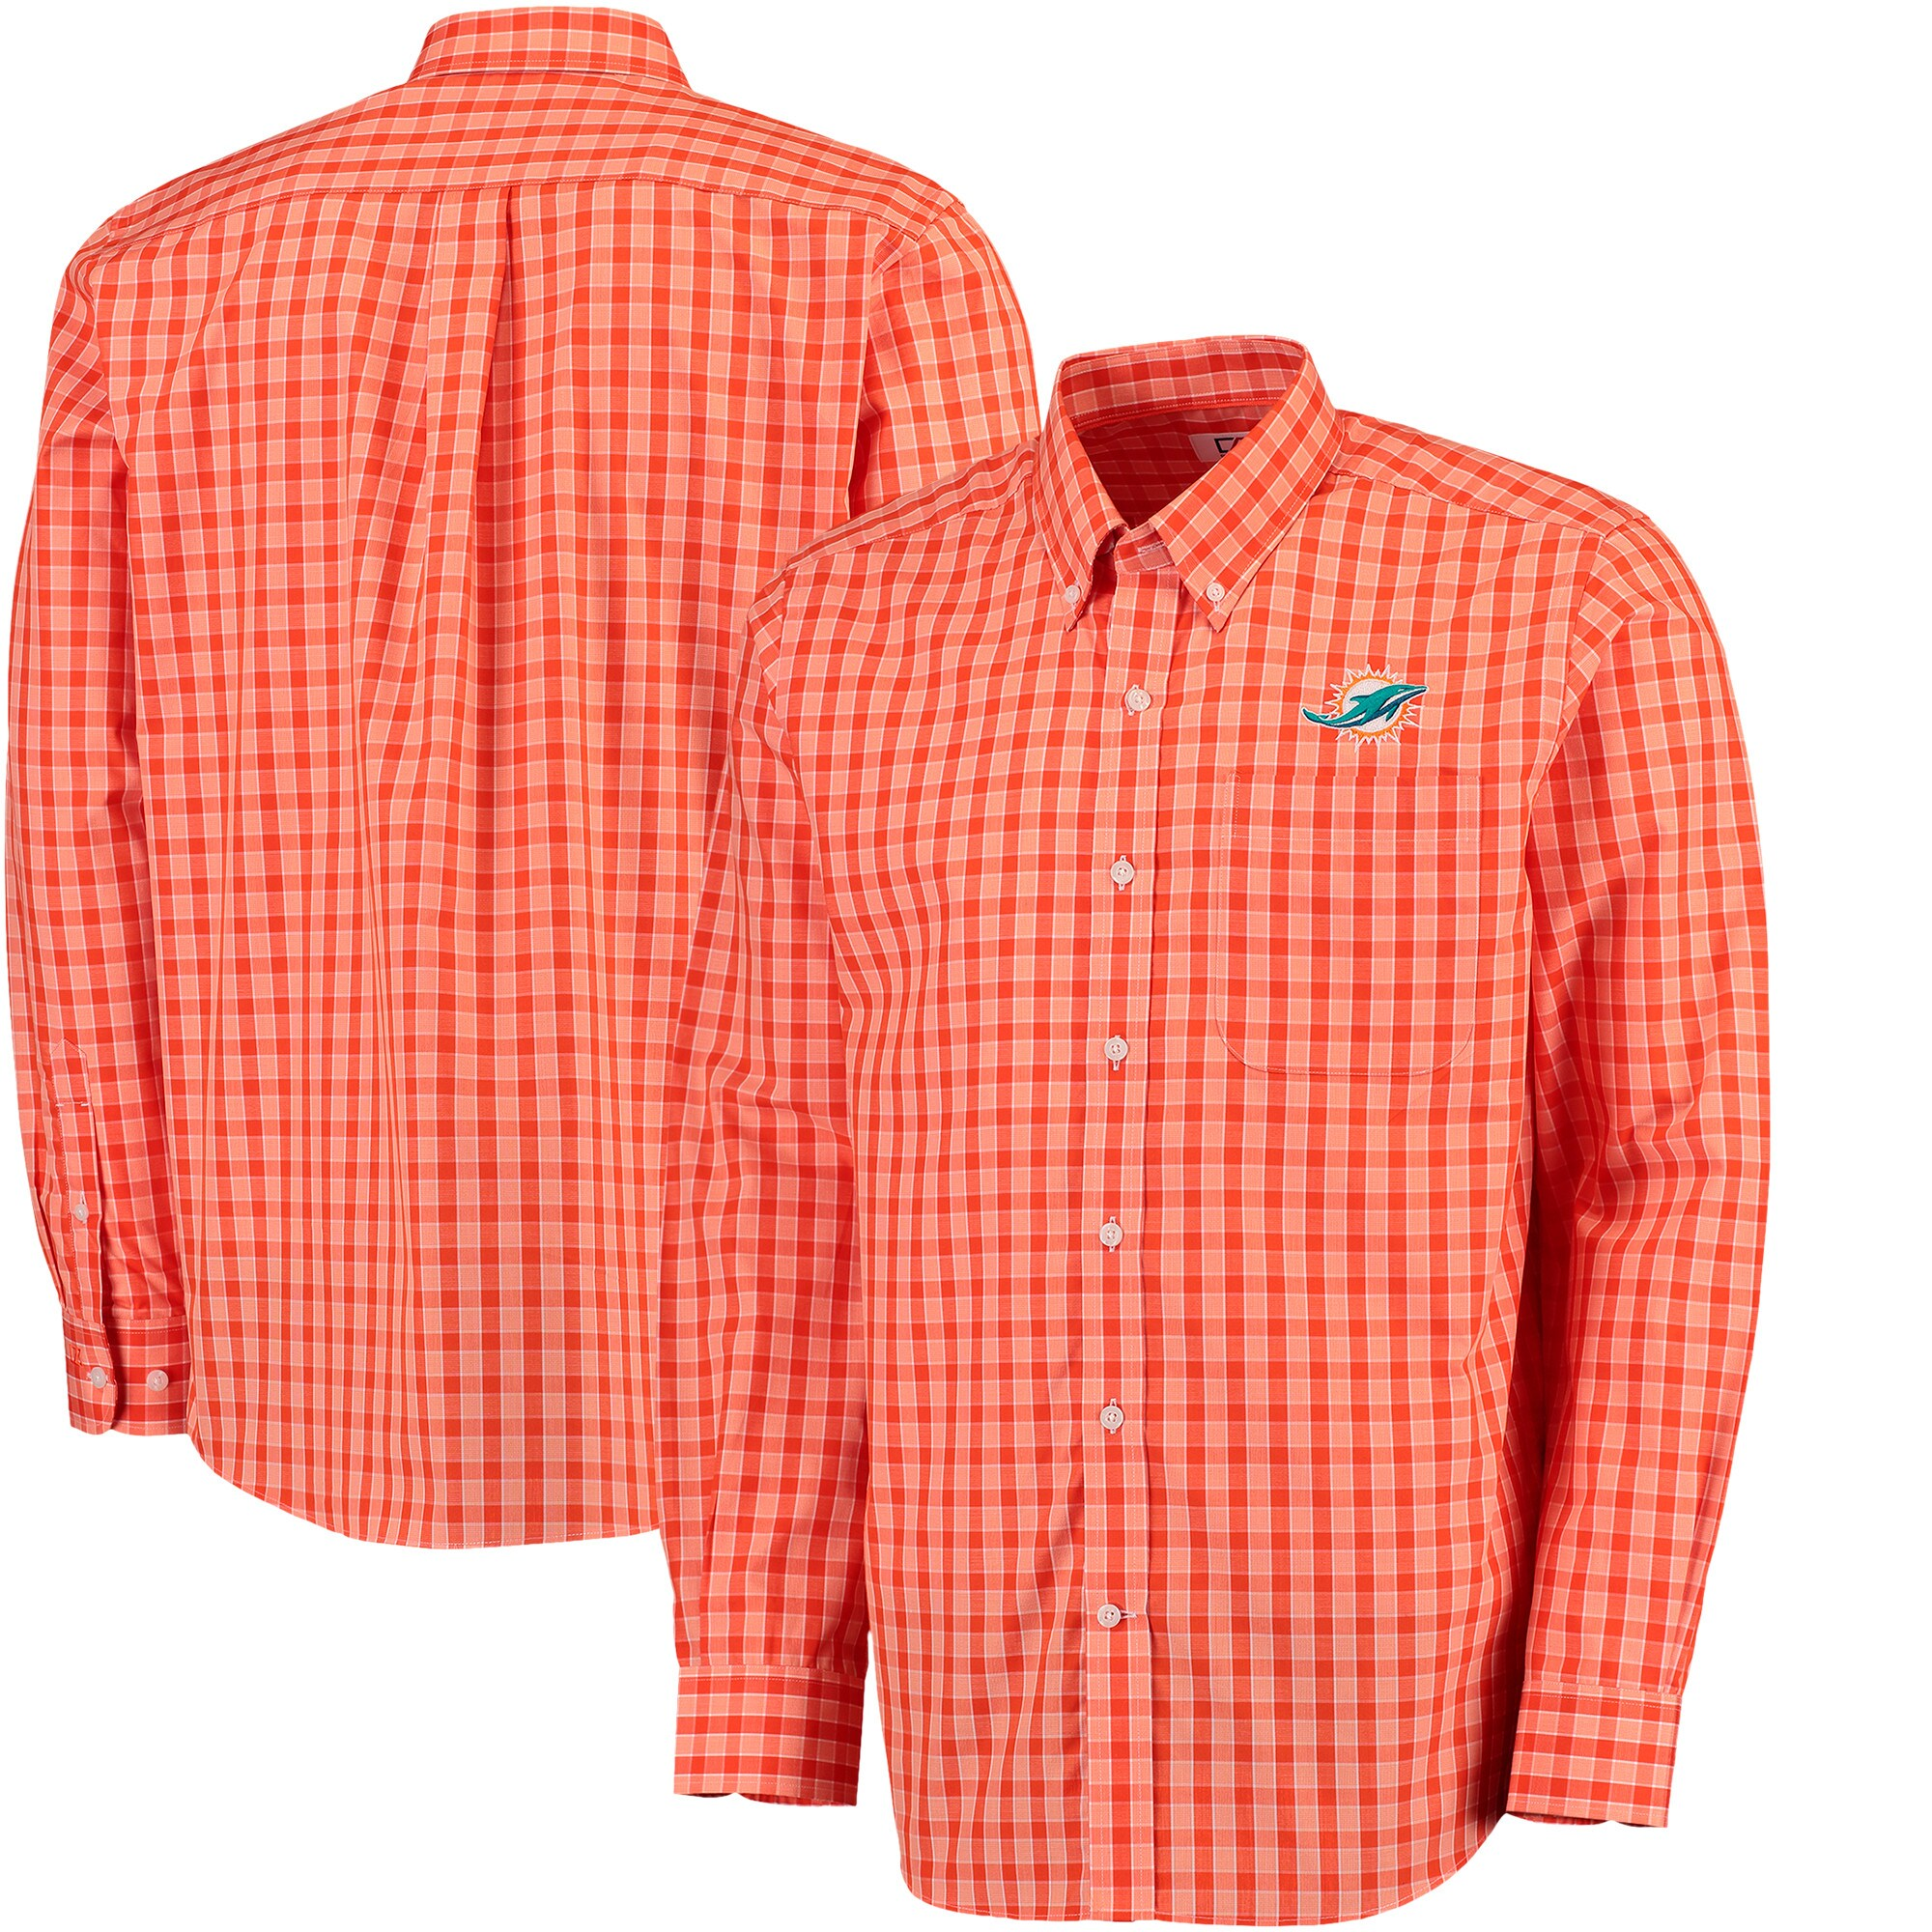 Miami Dolphins Cutter & Buck Discovery Park Plaid Long Sleeve Woven Shirt - Orange